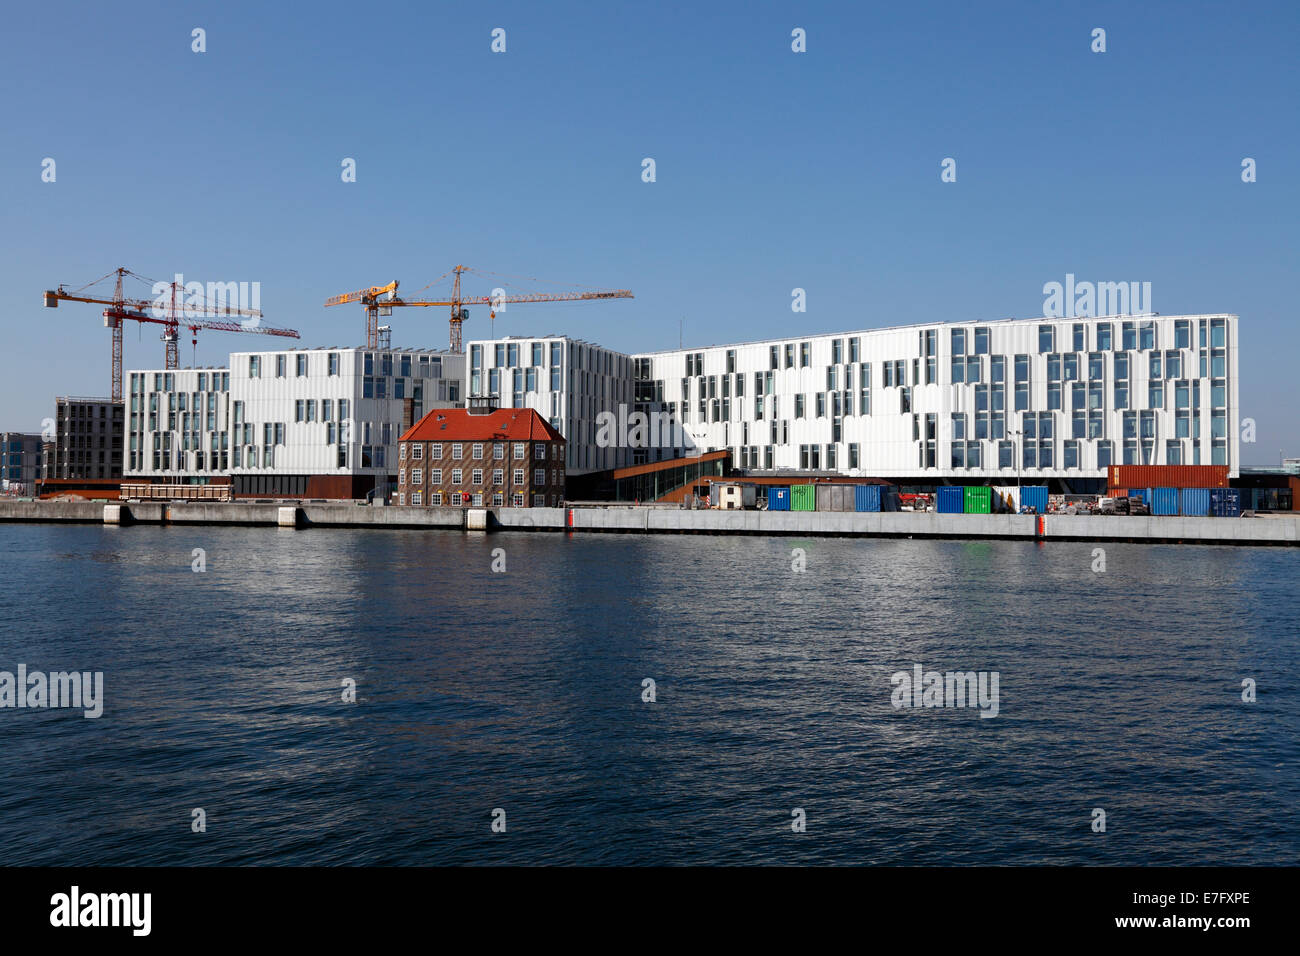 View of  the UN City octagon star-shaped building, UNOPS in Nordhavn, north harbour, in Copenhagen from the Langelinie - Stock Image